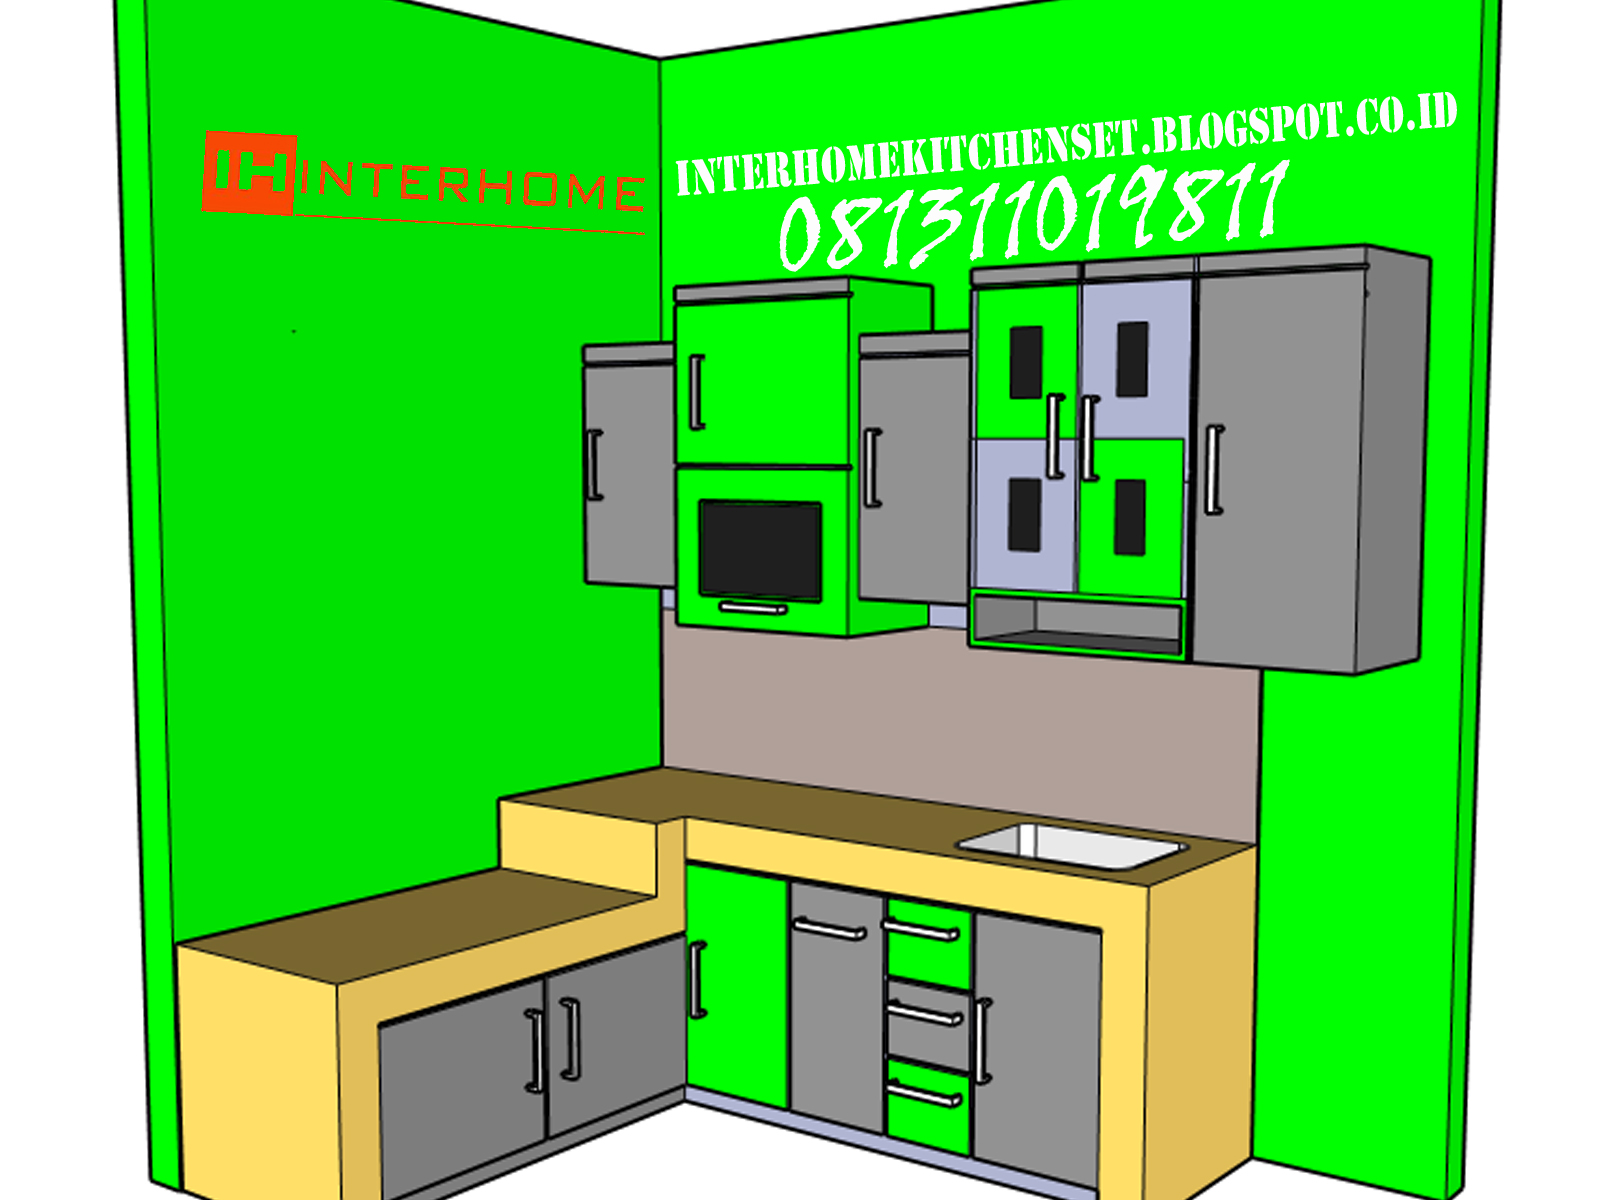 Interhome kitchen set murah gading serpong bsd for Kitchen set tangerang